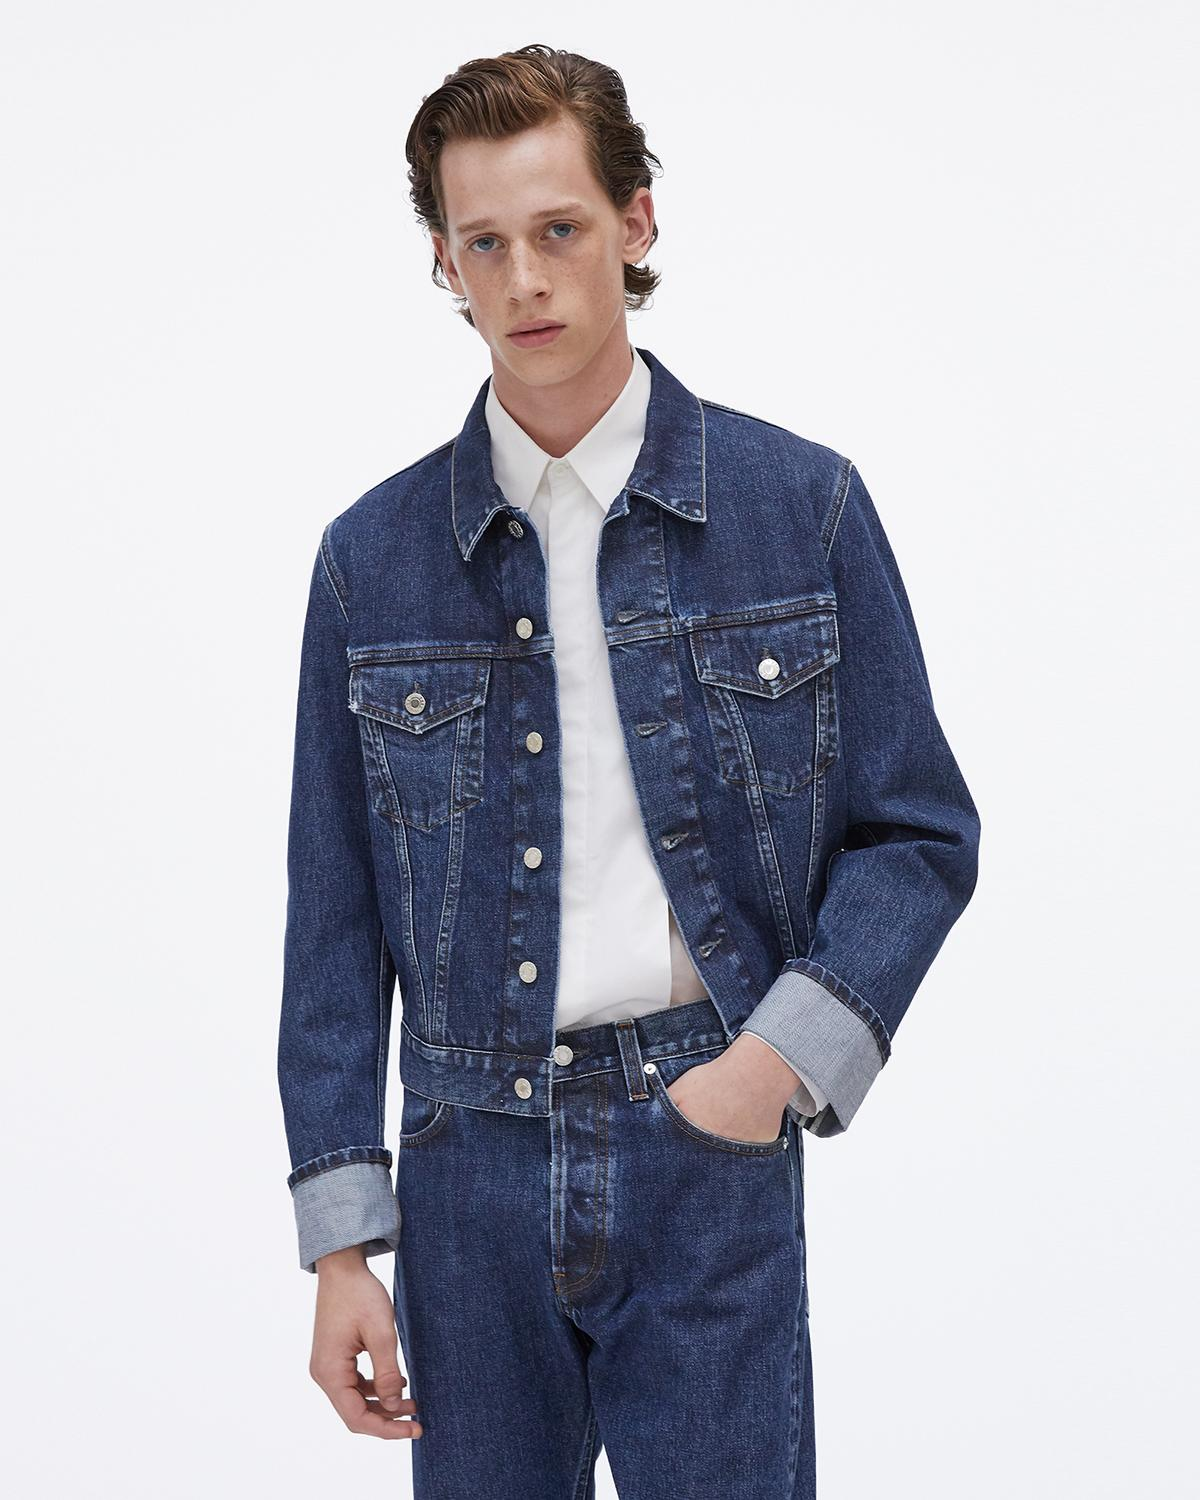 Cuffed Monogram Masc Trucker Jean Jacket